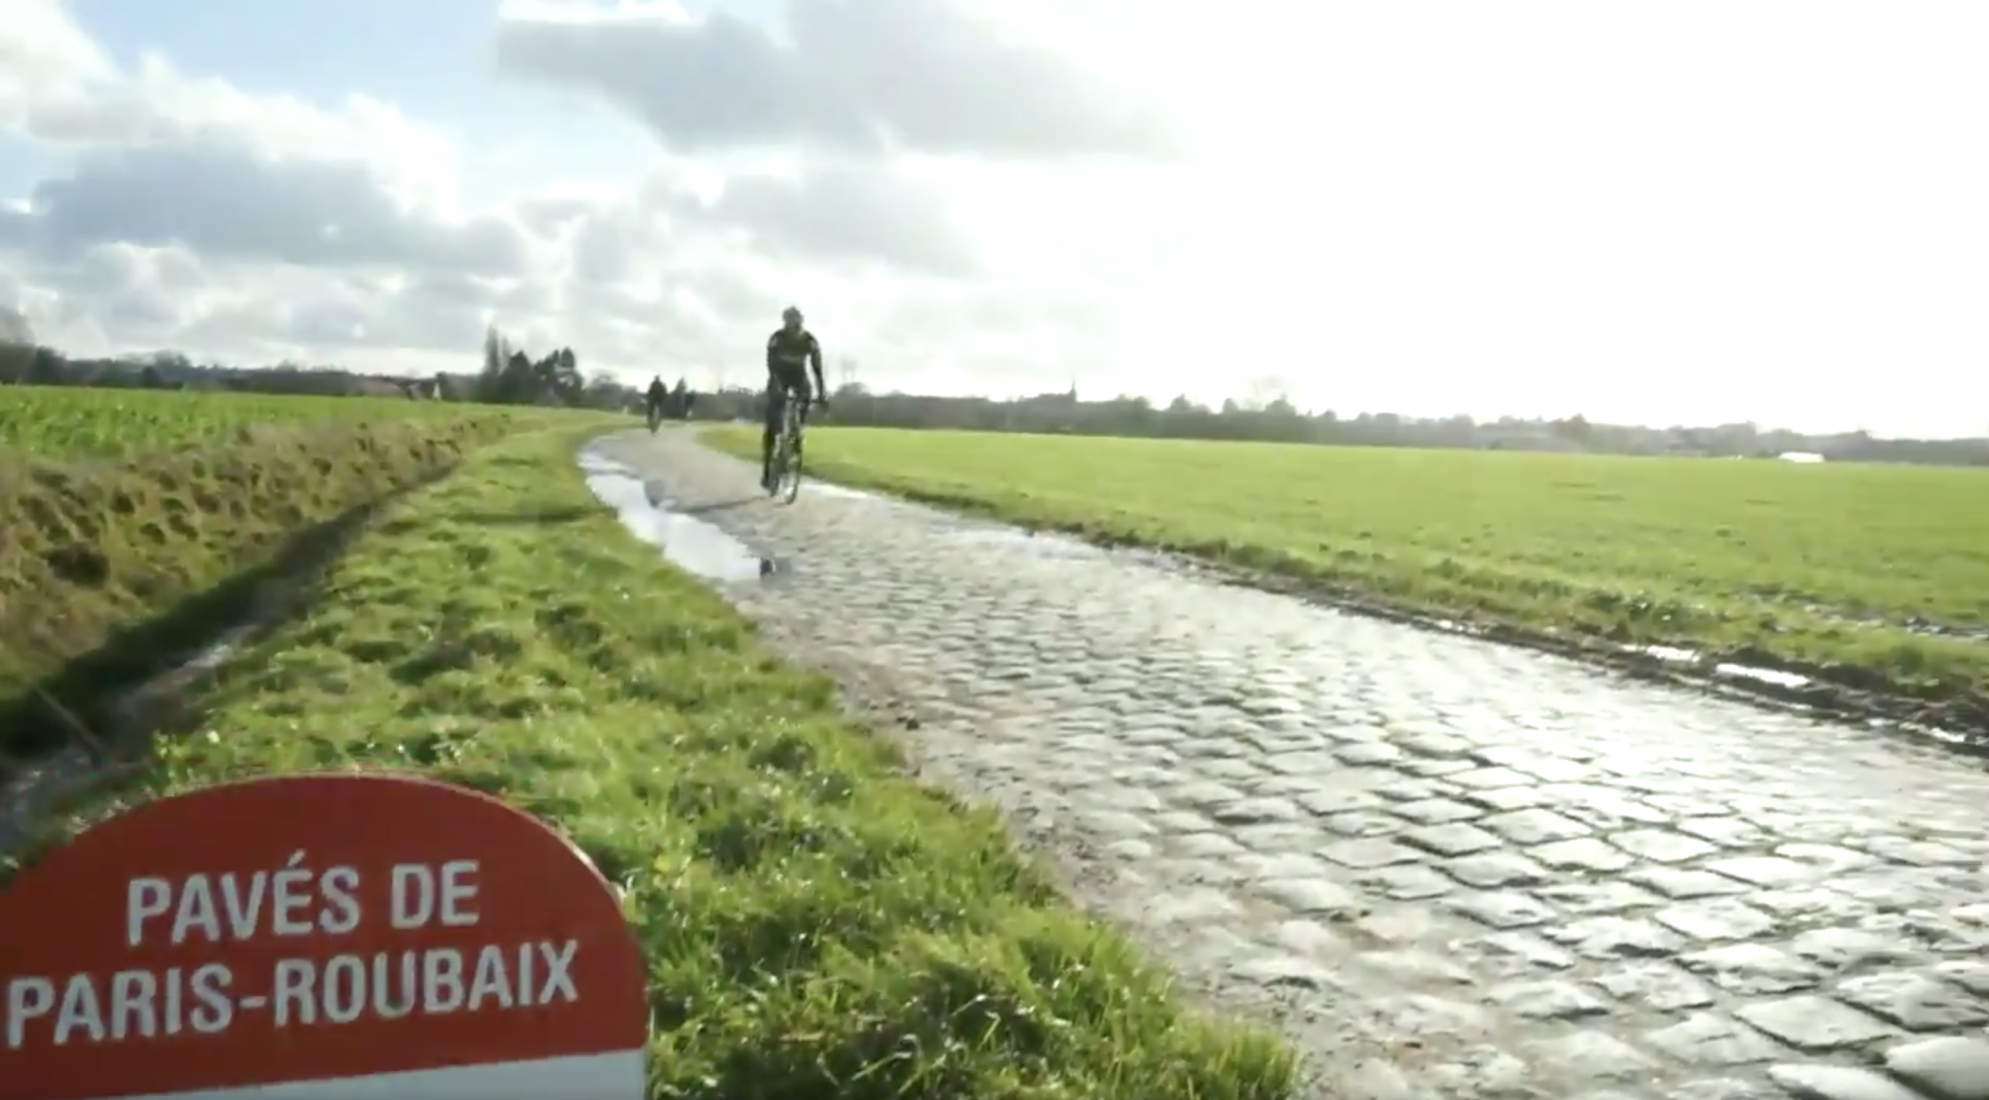 Le Wildcards per la Paris-Roubaix 2018